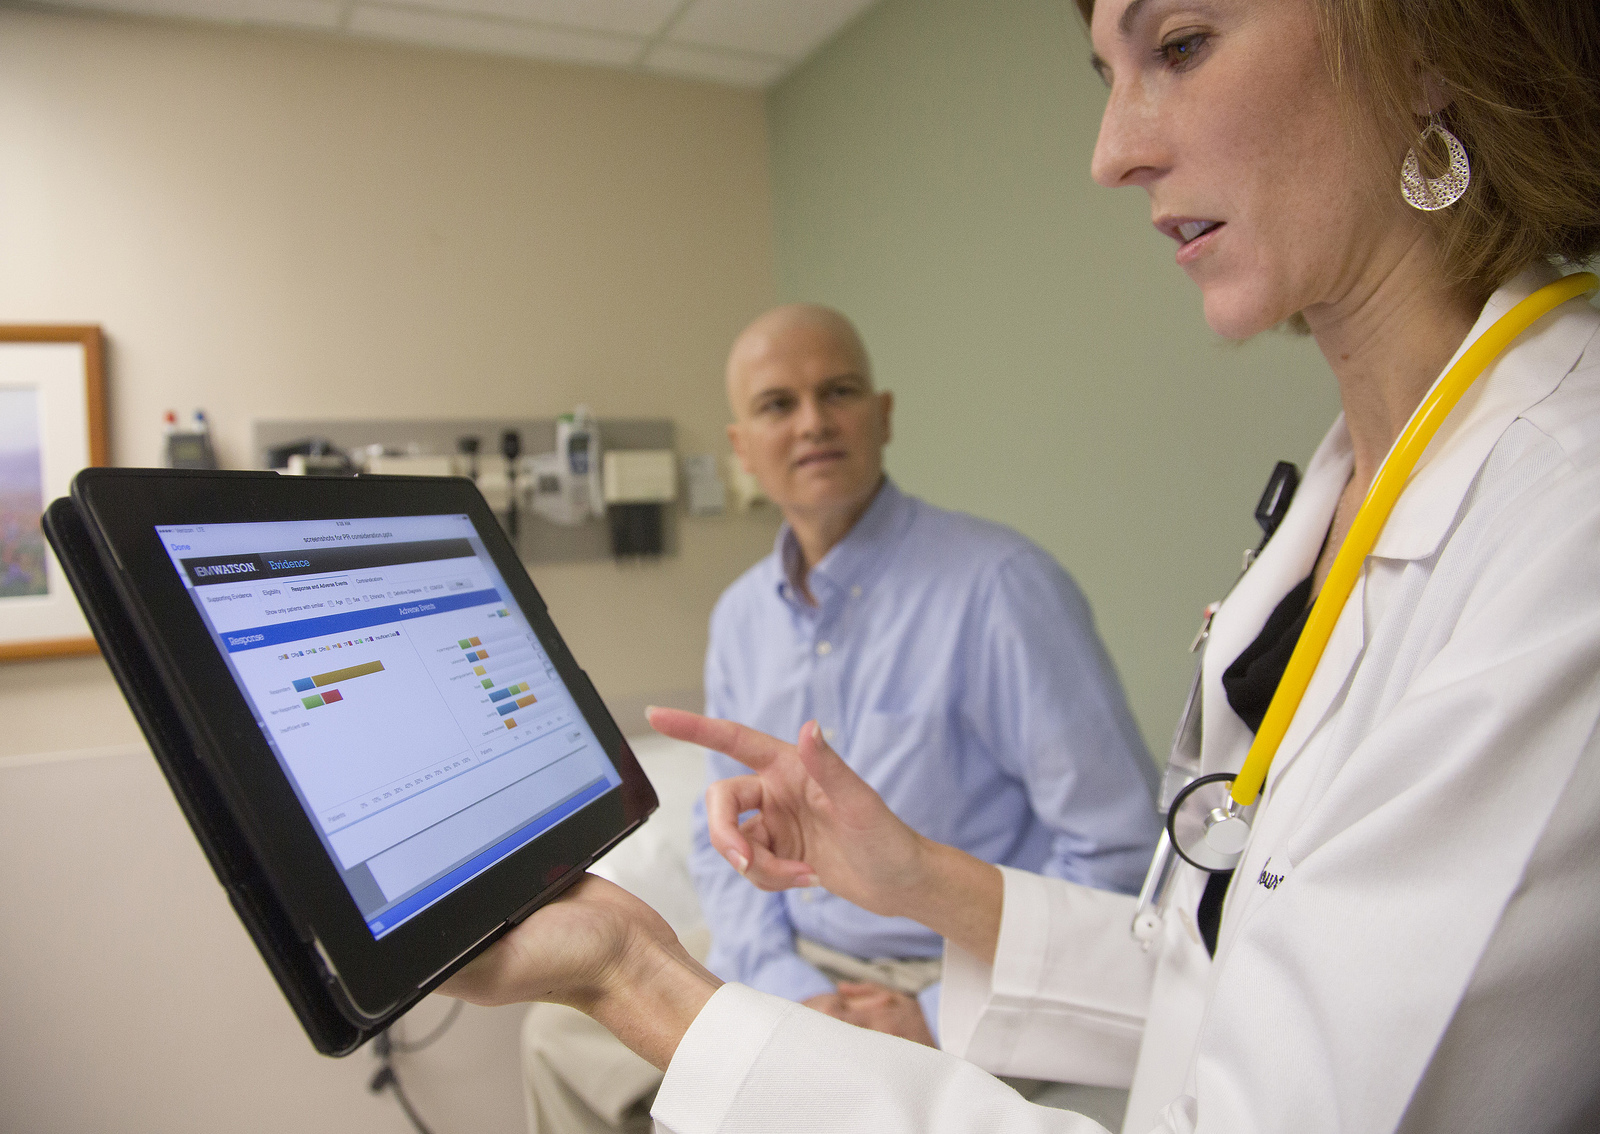 At the University of Texas MD Anderson Cancer Center, Assistant Professor of Leukemia Dr. Courtney DiNardo uses IBM's Watson cognitive system while consulting with patient Rich Ware.